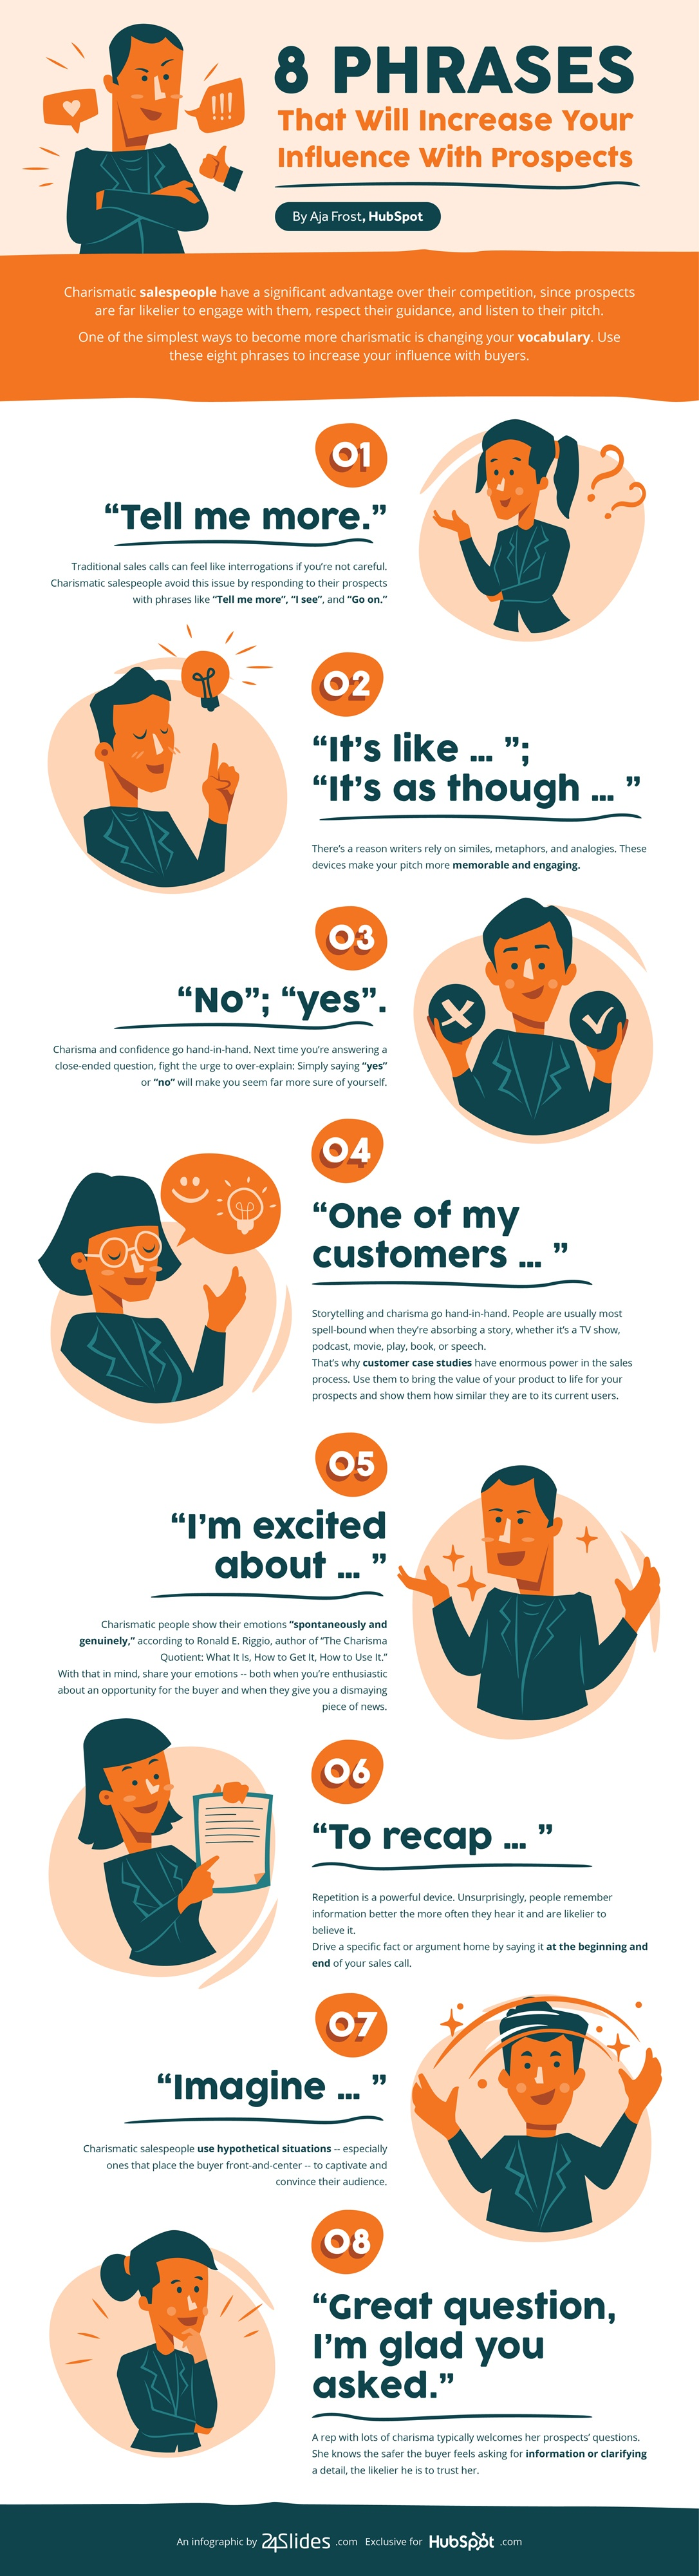 Infographic – 8 Phrases that Will Increase Your Influence with Prospects